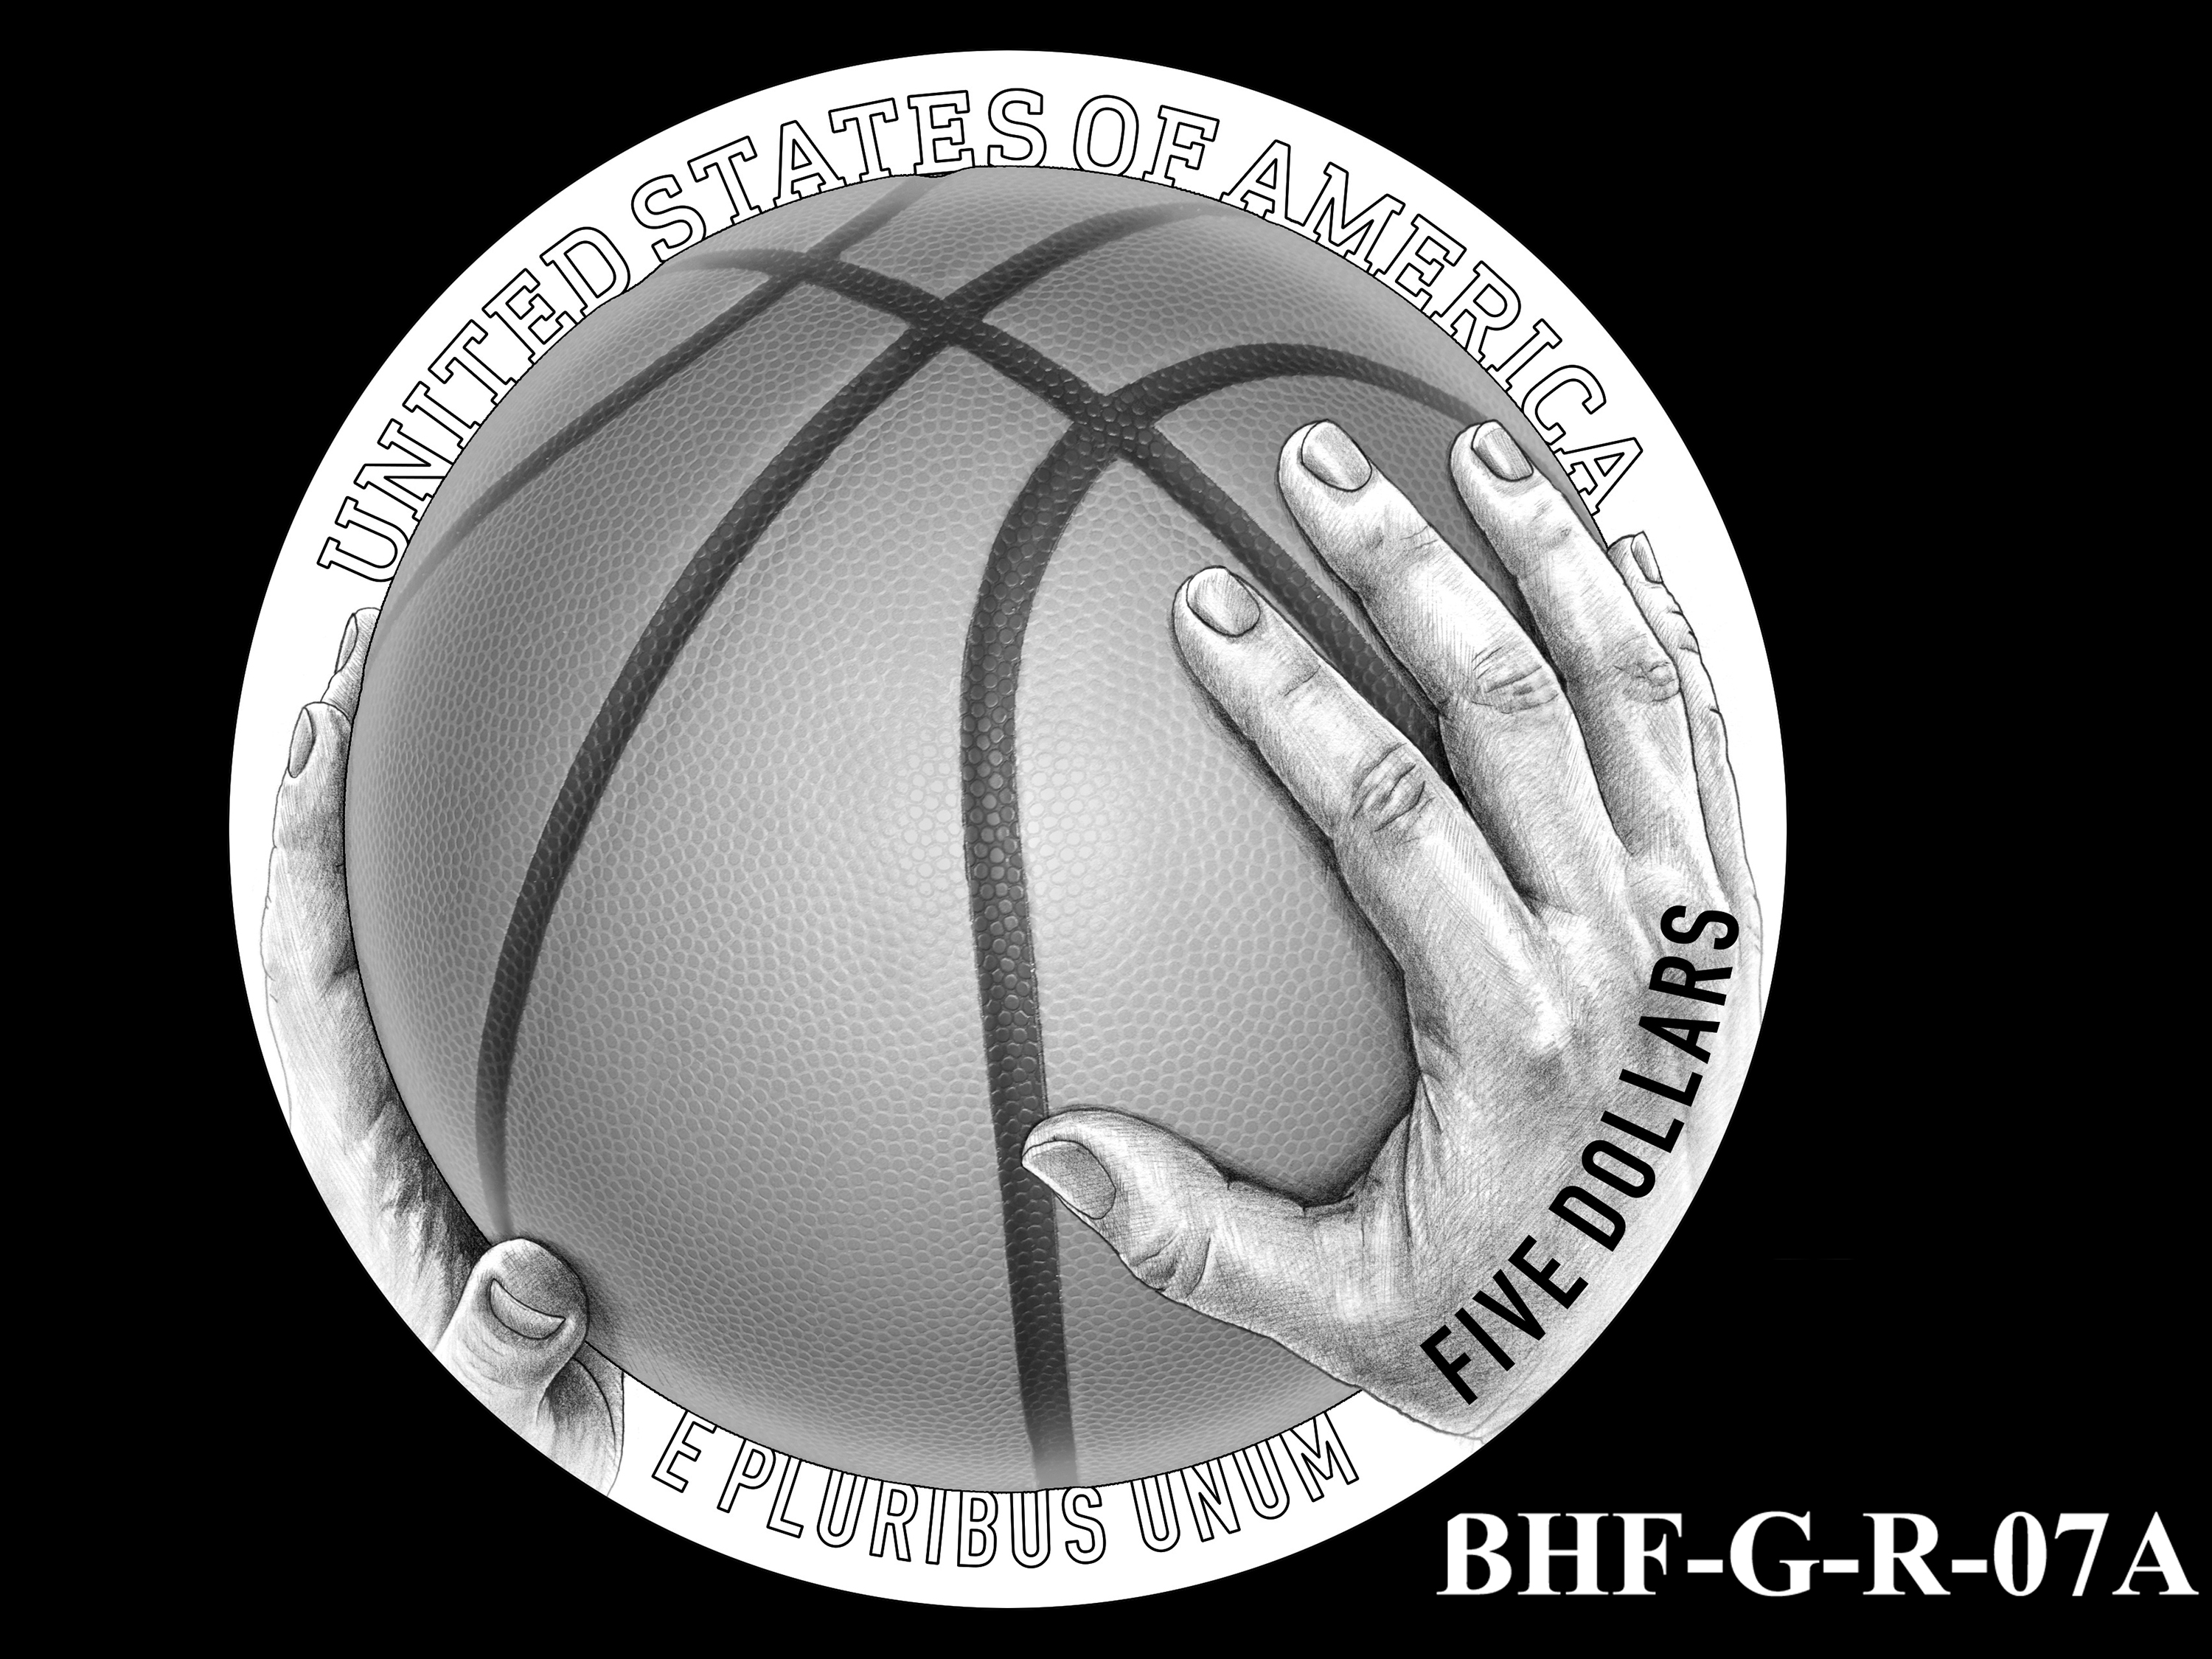 BHF-G-R-07A -- 2020 Basketball Hall of Fame Commemorative Coin Program - Gold Reverse